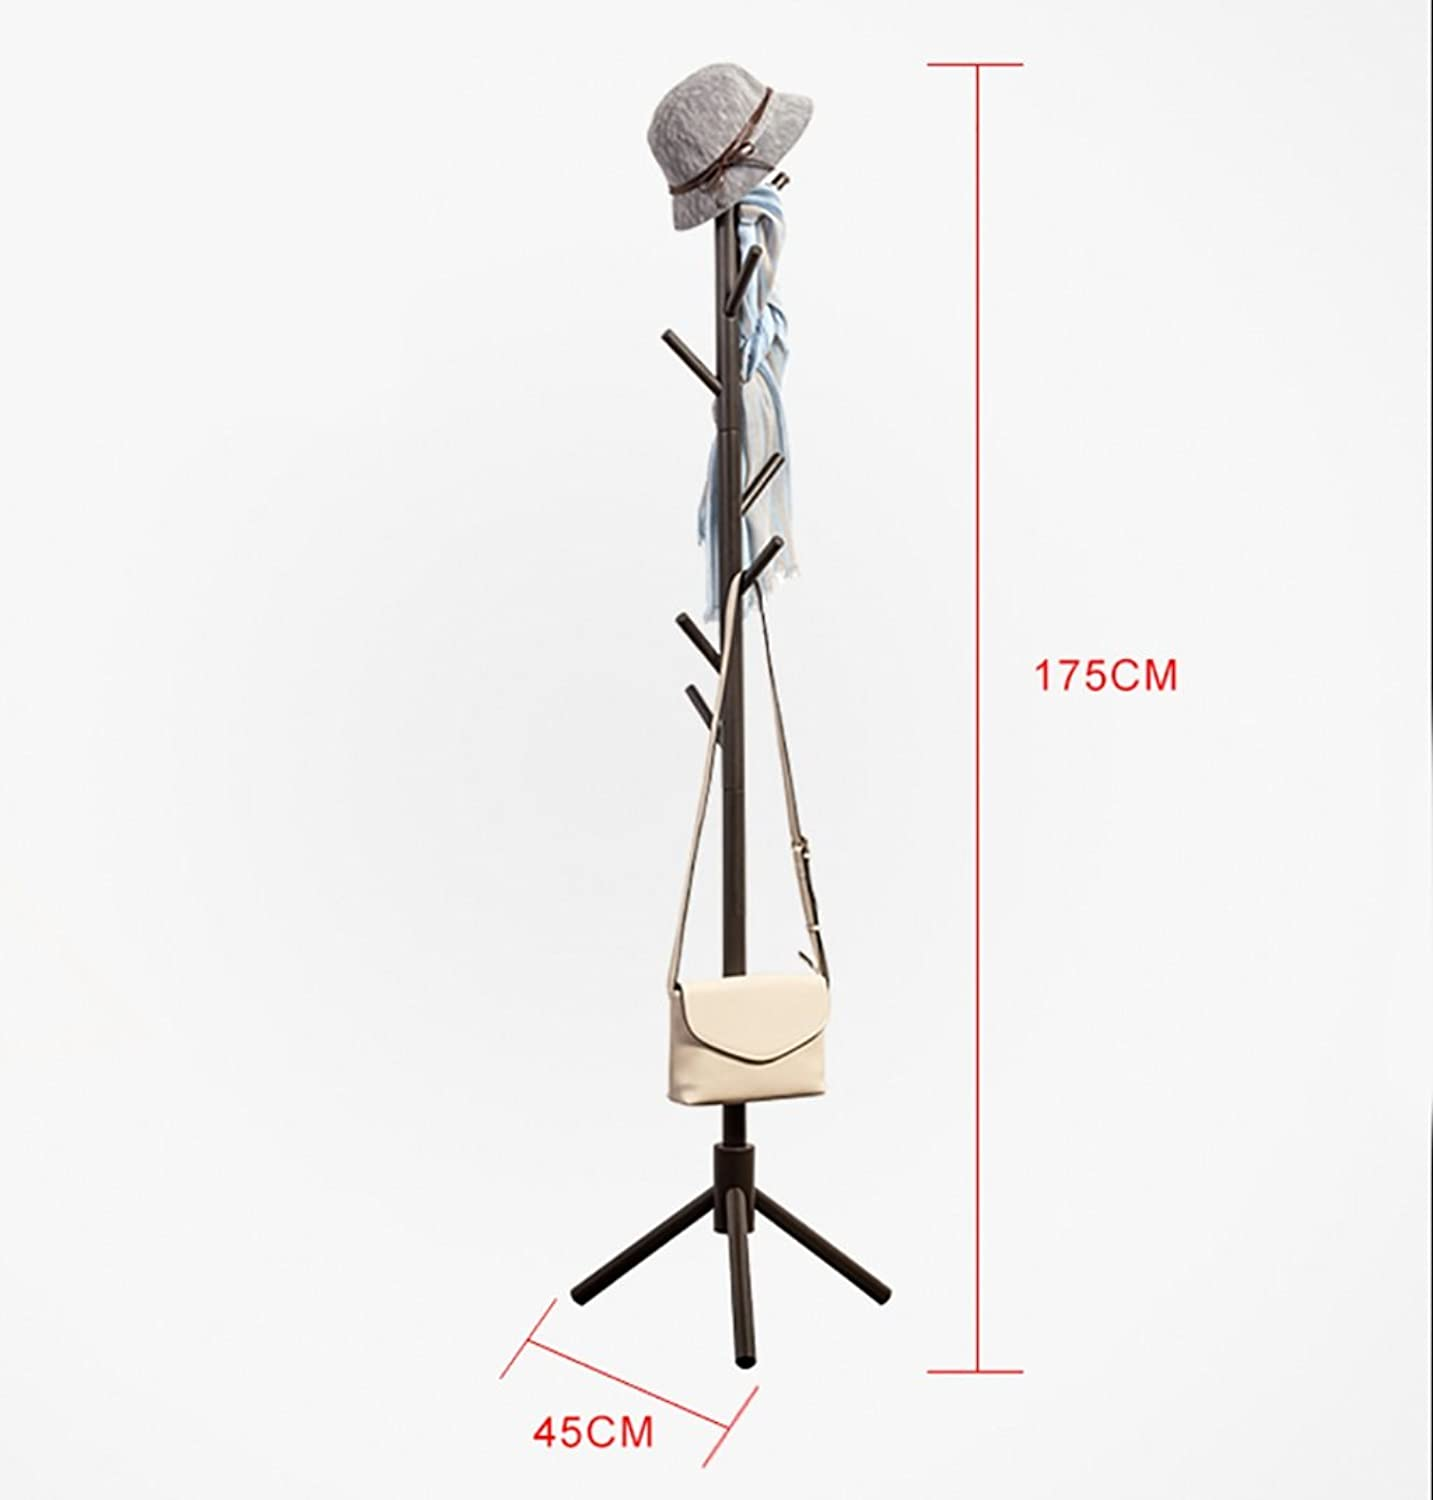 Standing Coat Rack Tree Stylish Wooden Hat Coat Rail Stand Rack Clothes Jacket Umbrella Storage Hanger Organiser 175CM(White) (color   A)